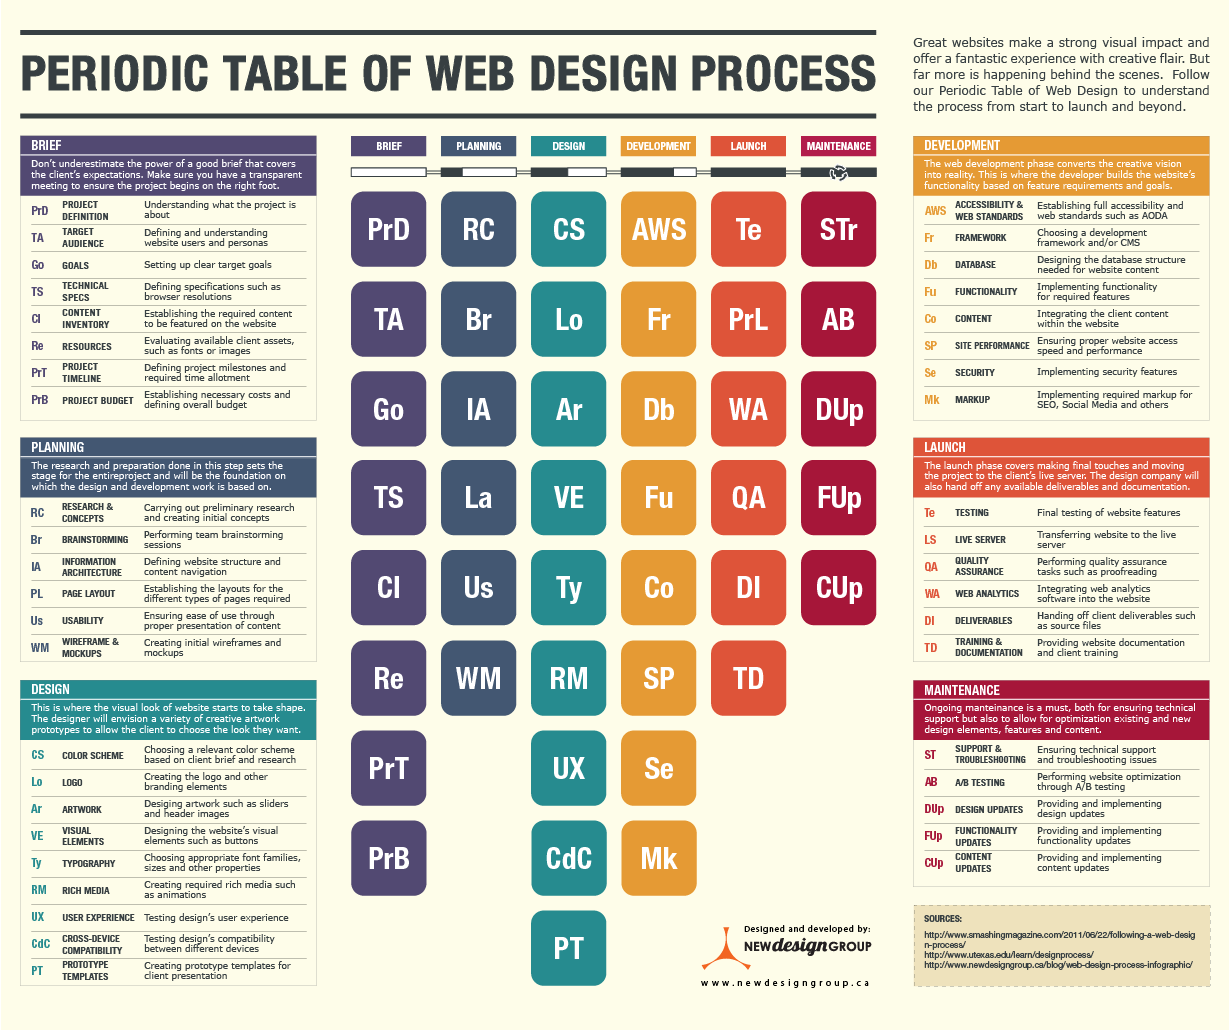 The Web Design Process Periodic Table [Infographic]  How many times have you had to placate your clients because they want to see their website live, and they want it NOW? It's usually because clients have no understanding of what happens behind the scenes when we develop websites #webdesignprocess